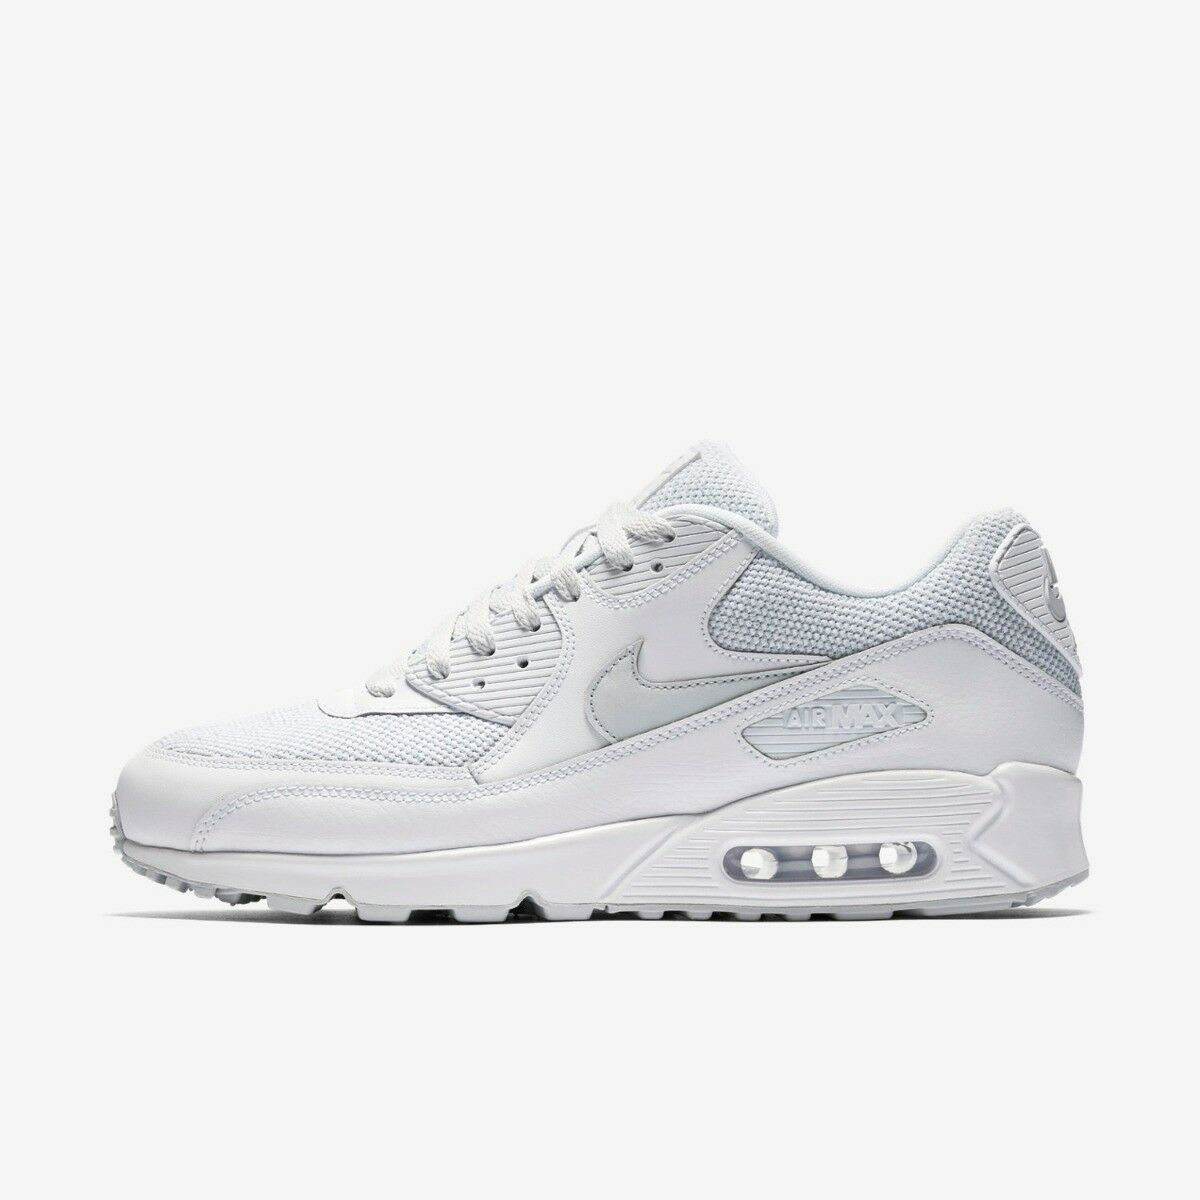 NIKE AIR MAX 90 MENS RUNNING TRAINER SHOE SIZE 6 6 6 7 7.5 WHITE 11a73b